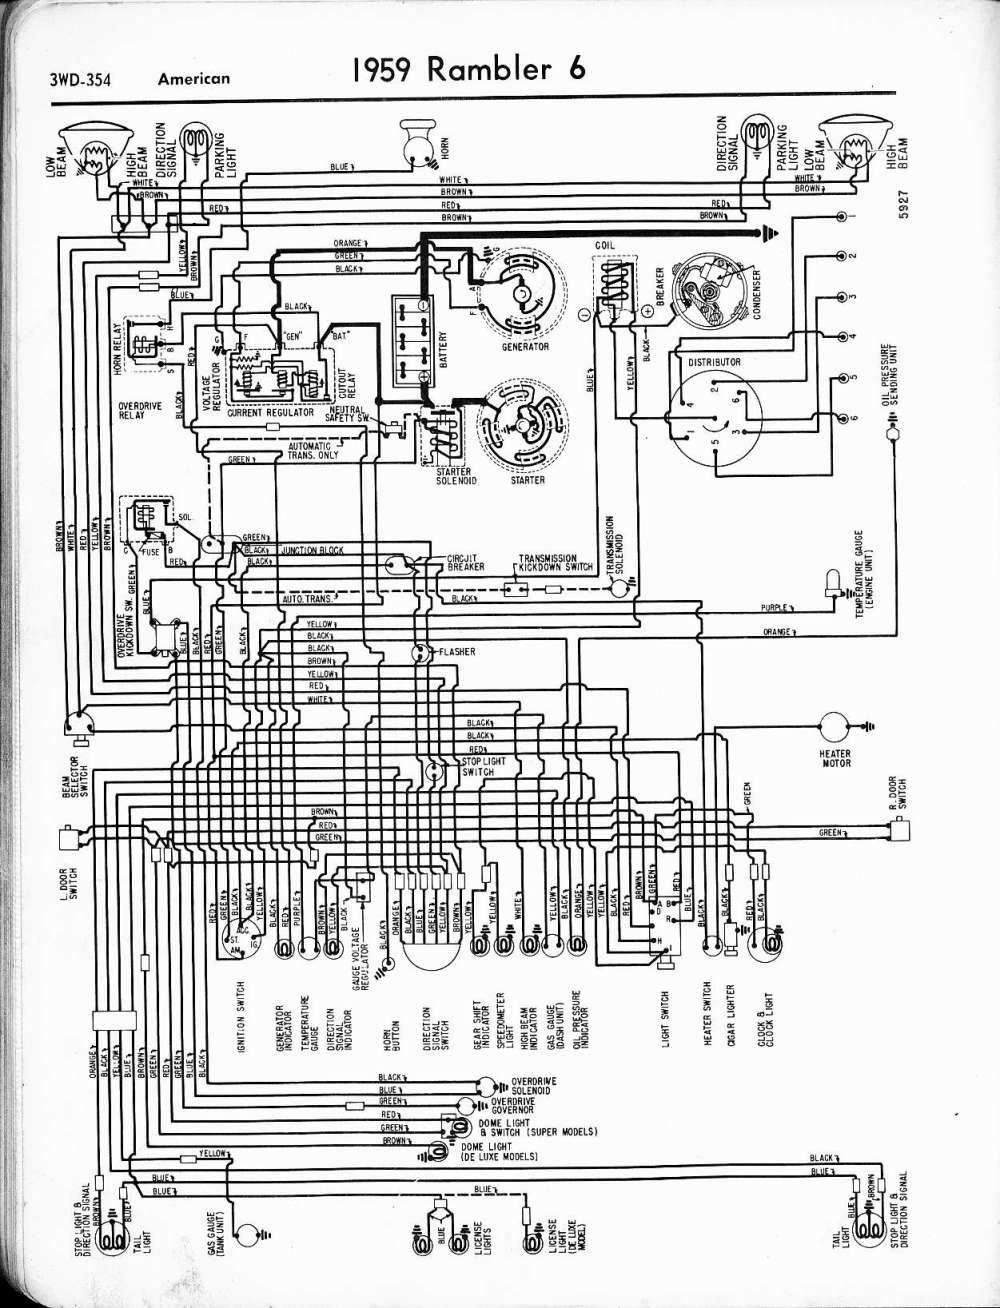 medium resolution of rambler wiring diagrams the old car manual project manual car diagram car manual diagram